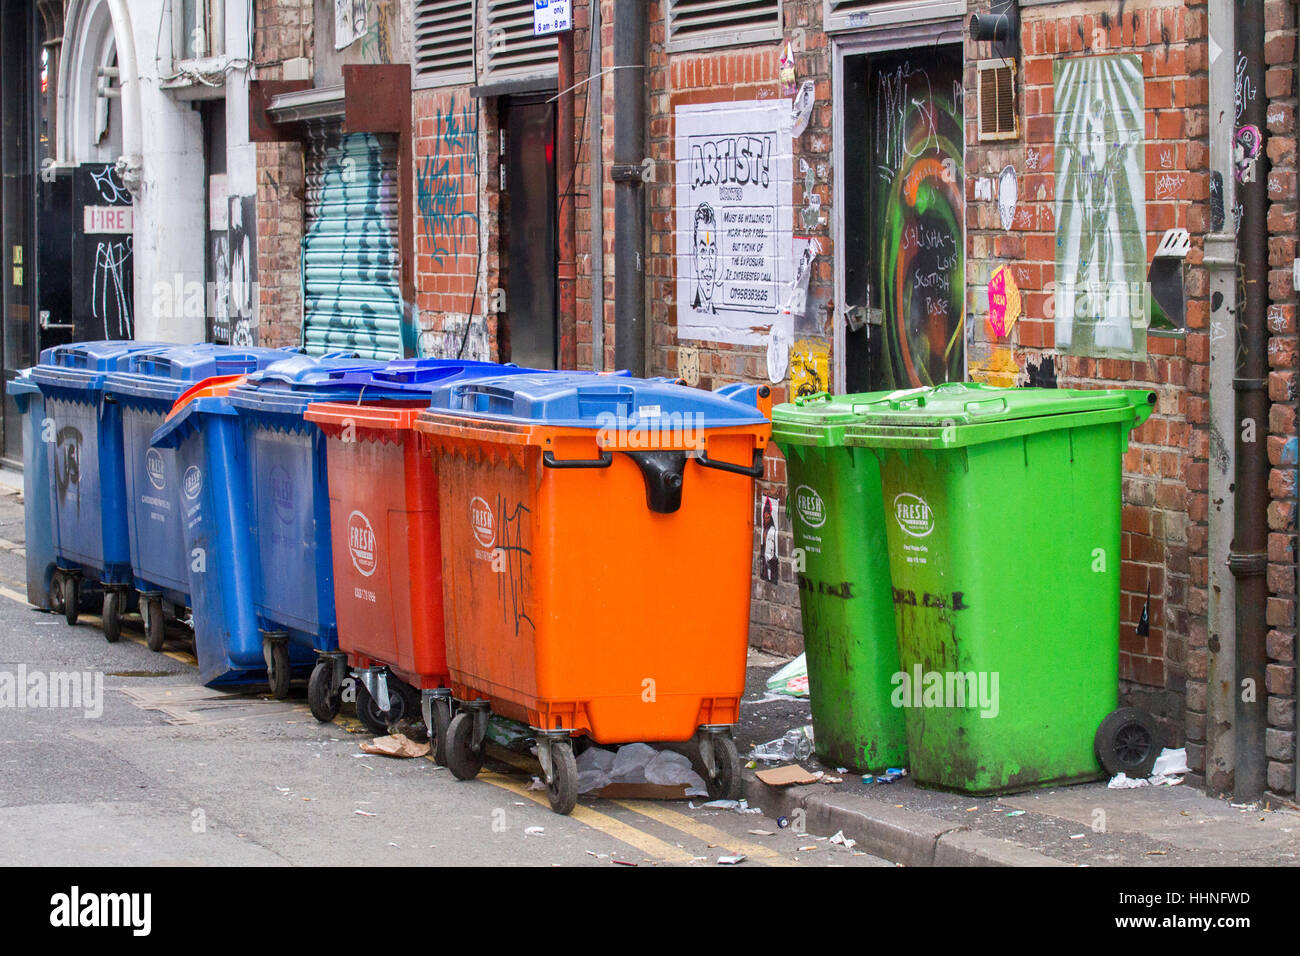 A line of multicoloured dumpsters behind stores in Manchester City centre - Stock Image